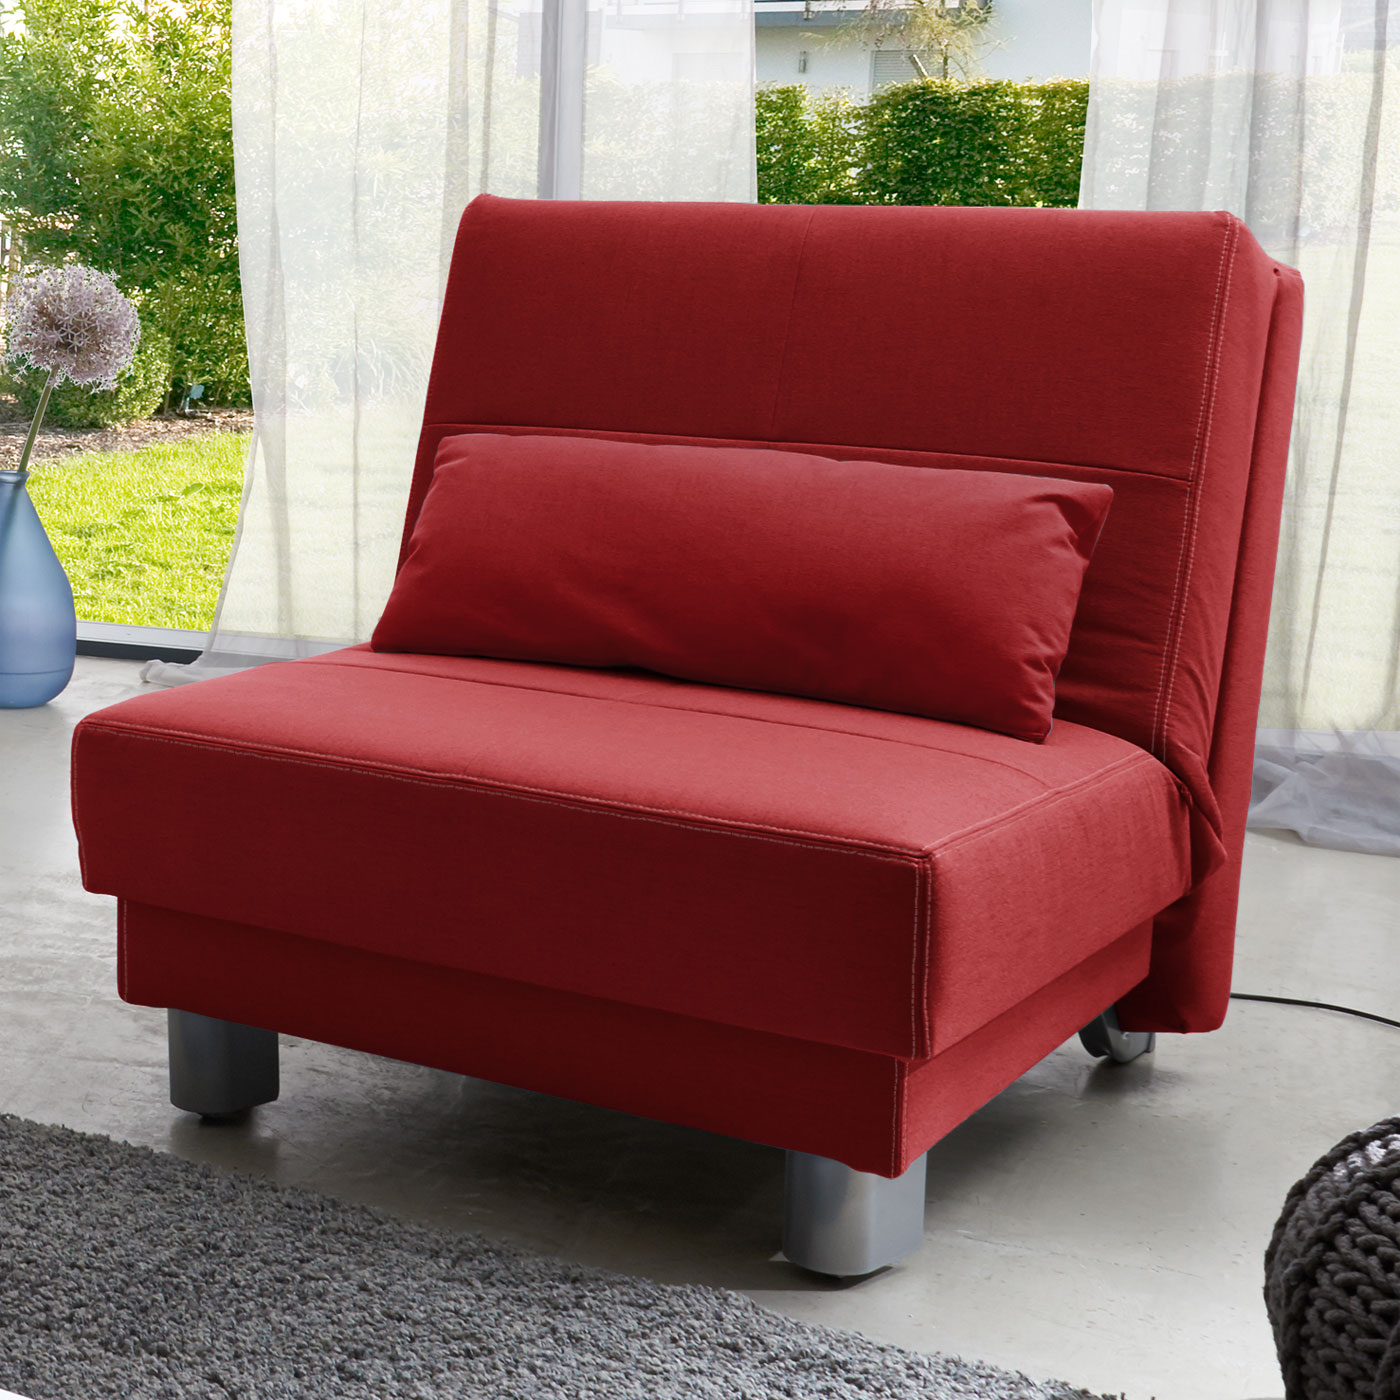 Schlafcouch Mit Sessel Schlafsofa Mit Sessel Schlafsofa Mit Sessel Deutsche